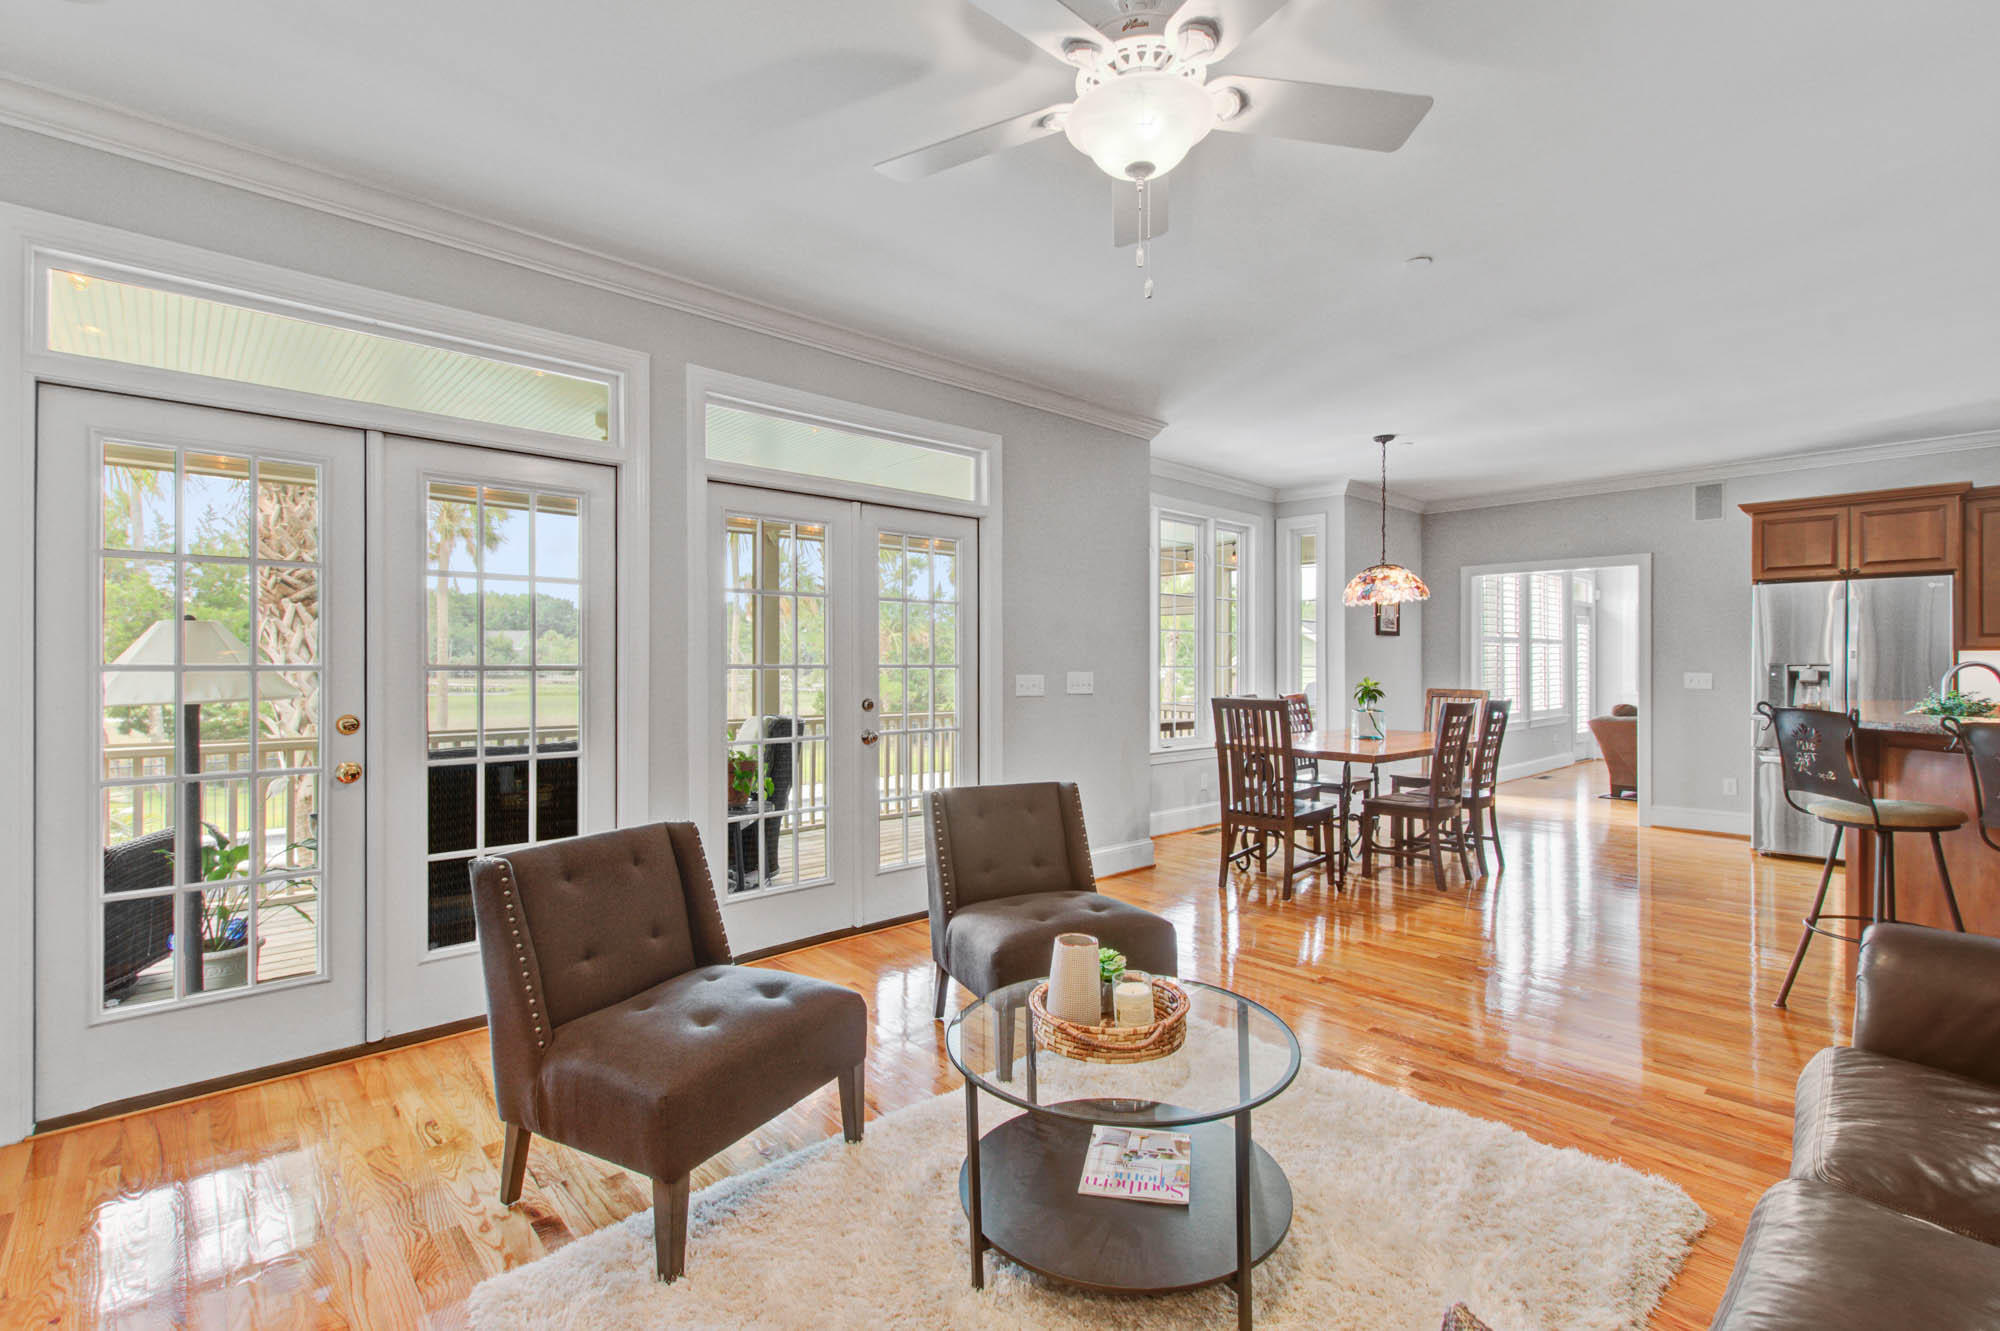 Dunes West Homes For Sale - 2069 Shell Ring, Mount Pleasant, SC - 43